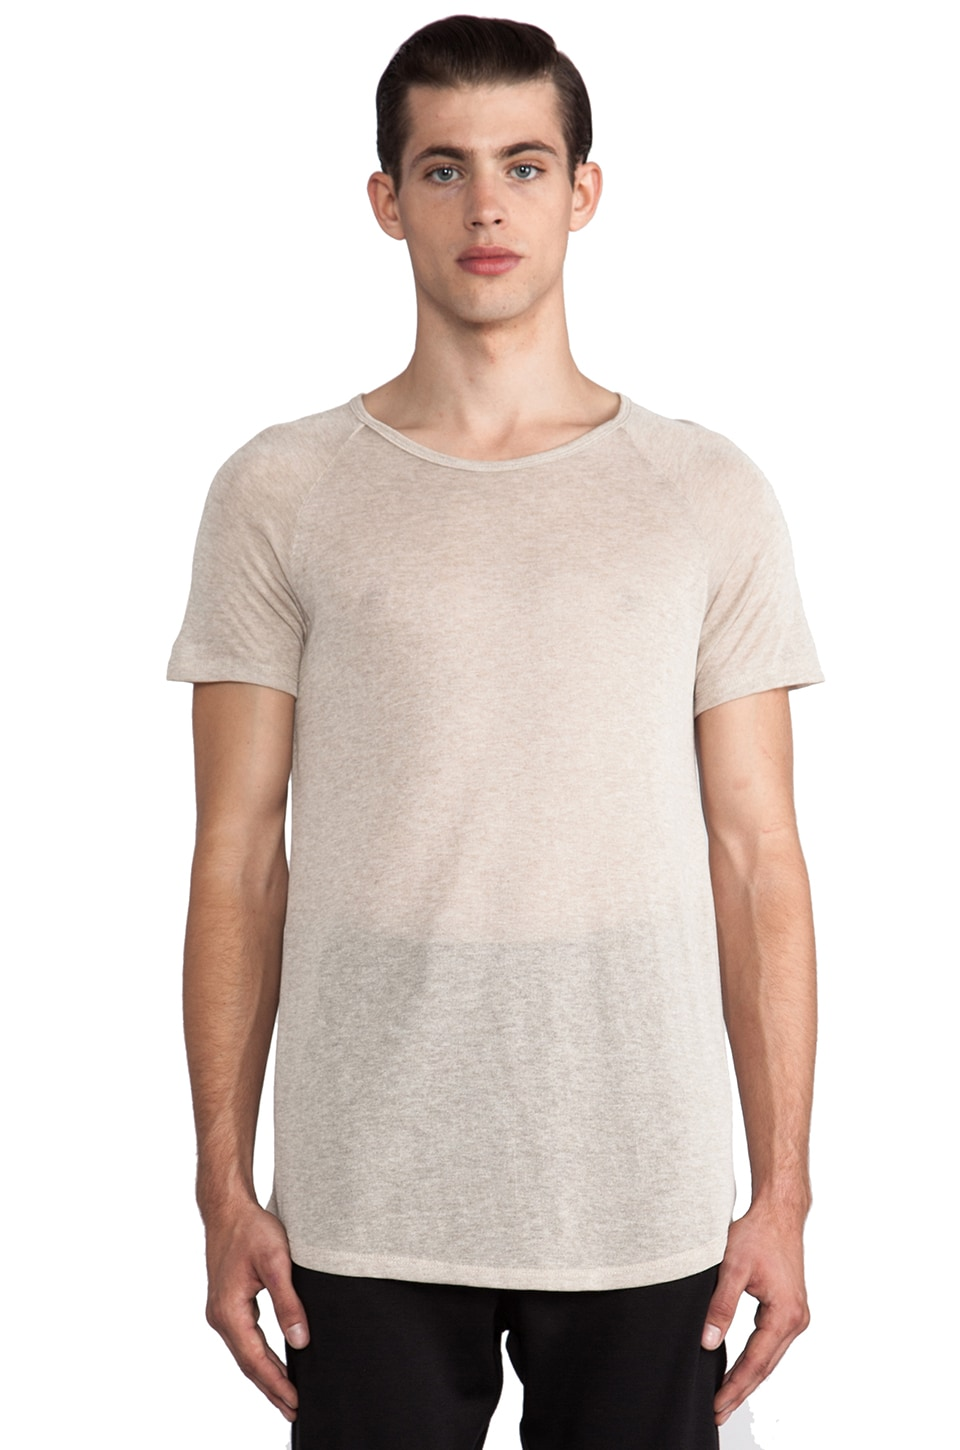 Post Bellum Slub Raglan Tee in Beige